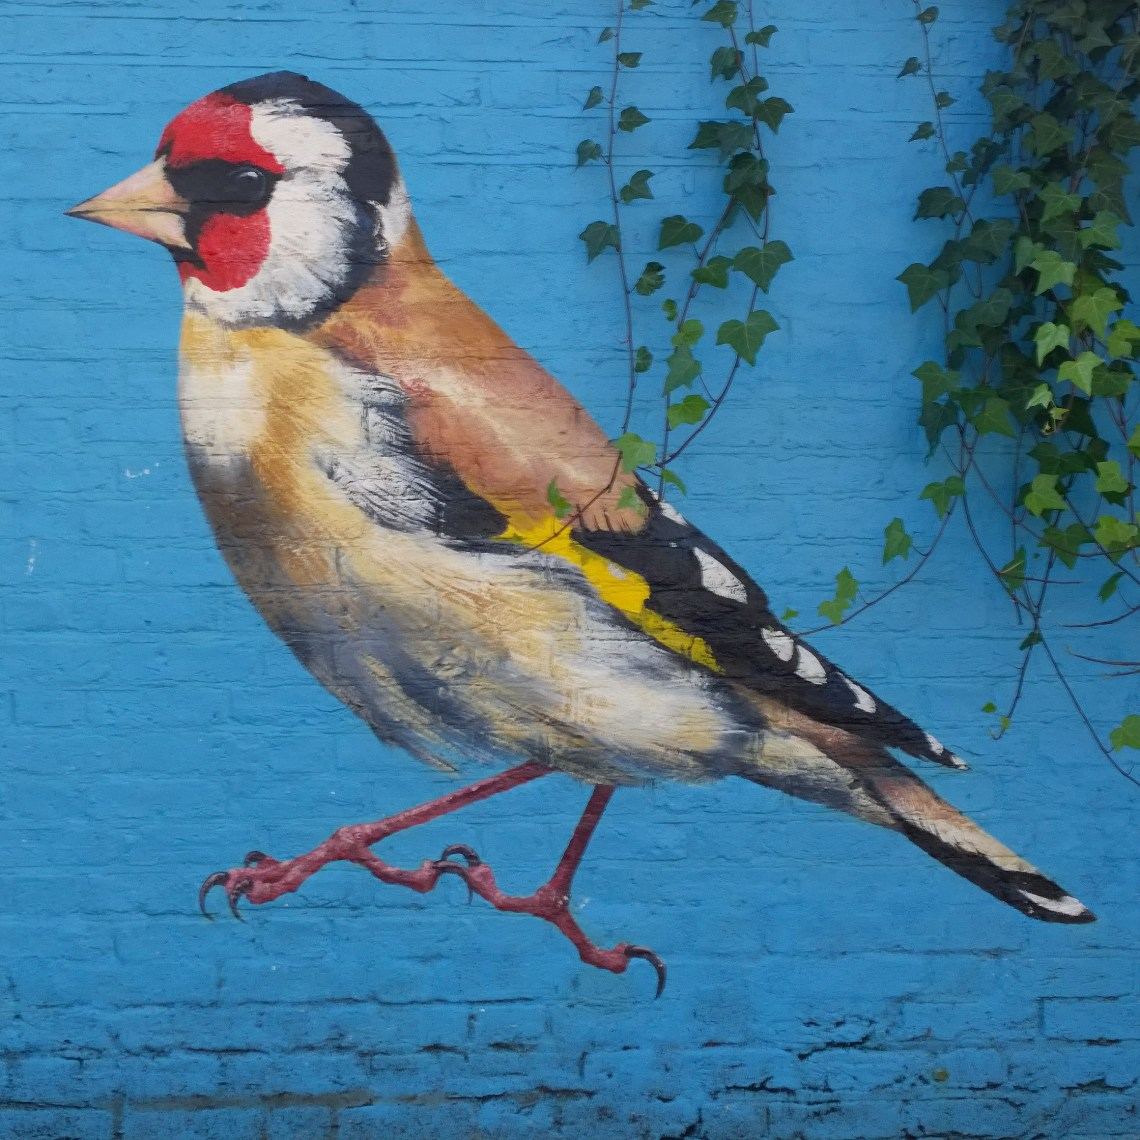 A Goldfinch by ATM in Acton. Goldfinch were number 6 in the 2020 big garden birdwatch